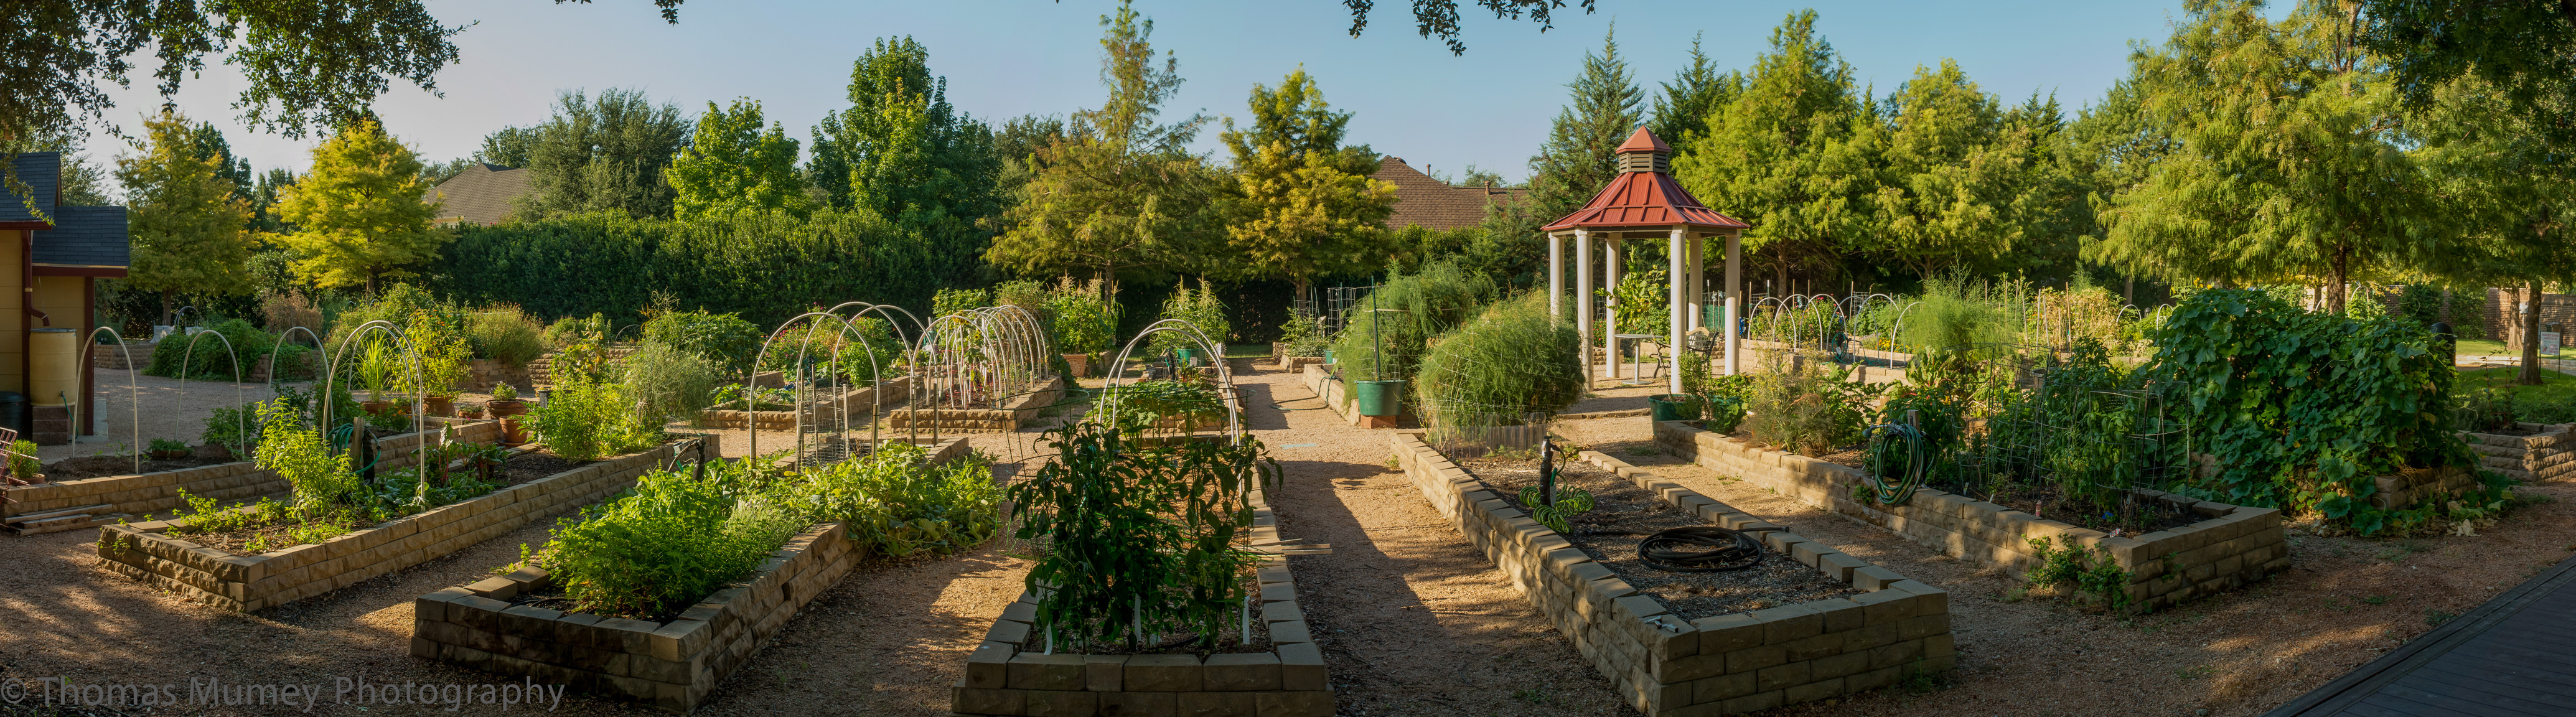 Addison Community Garden